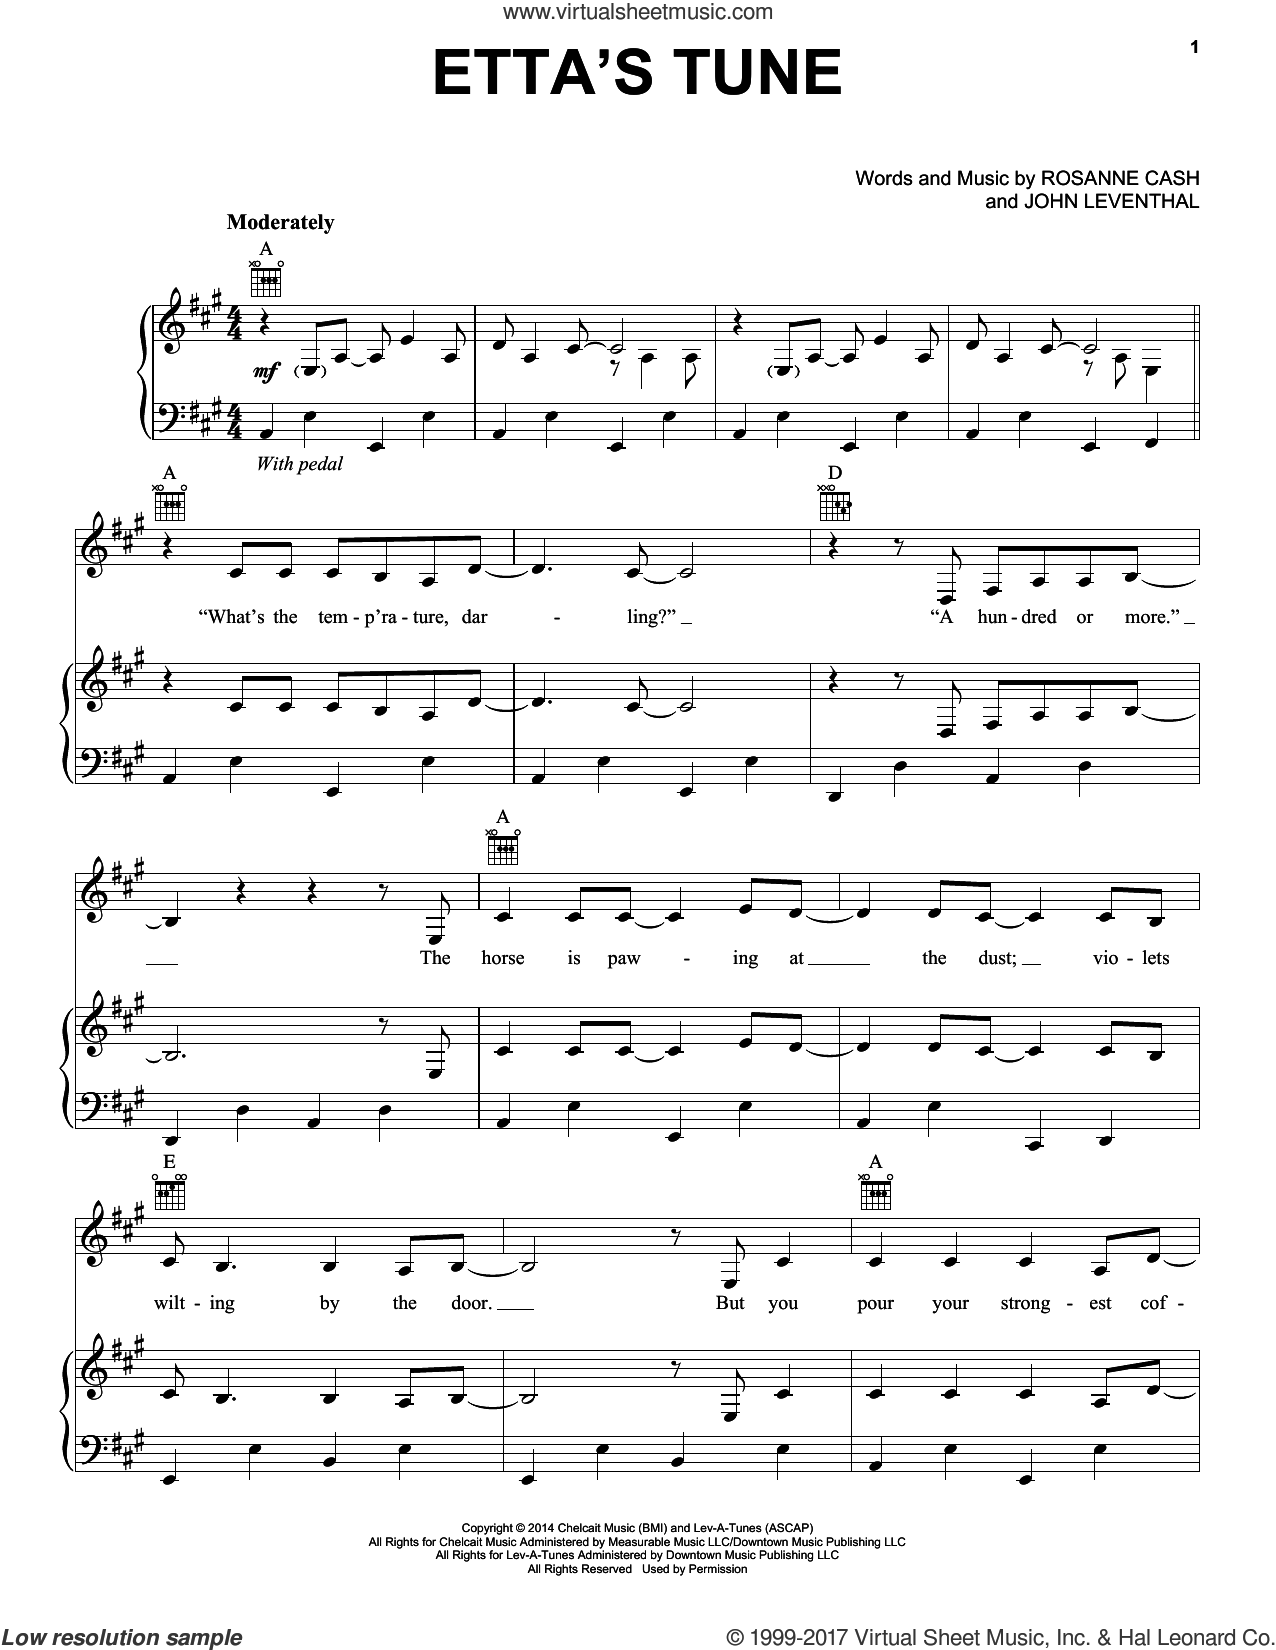 Etta's Tune sheet music for voice, piano or guitar by Rosanne Cash and John Leventhal. Score Image Preview.